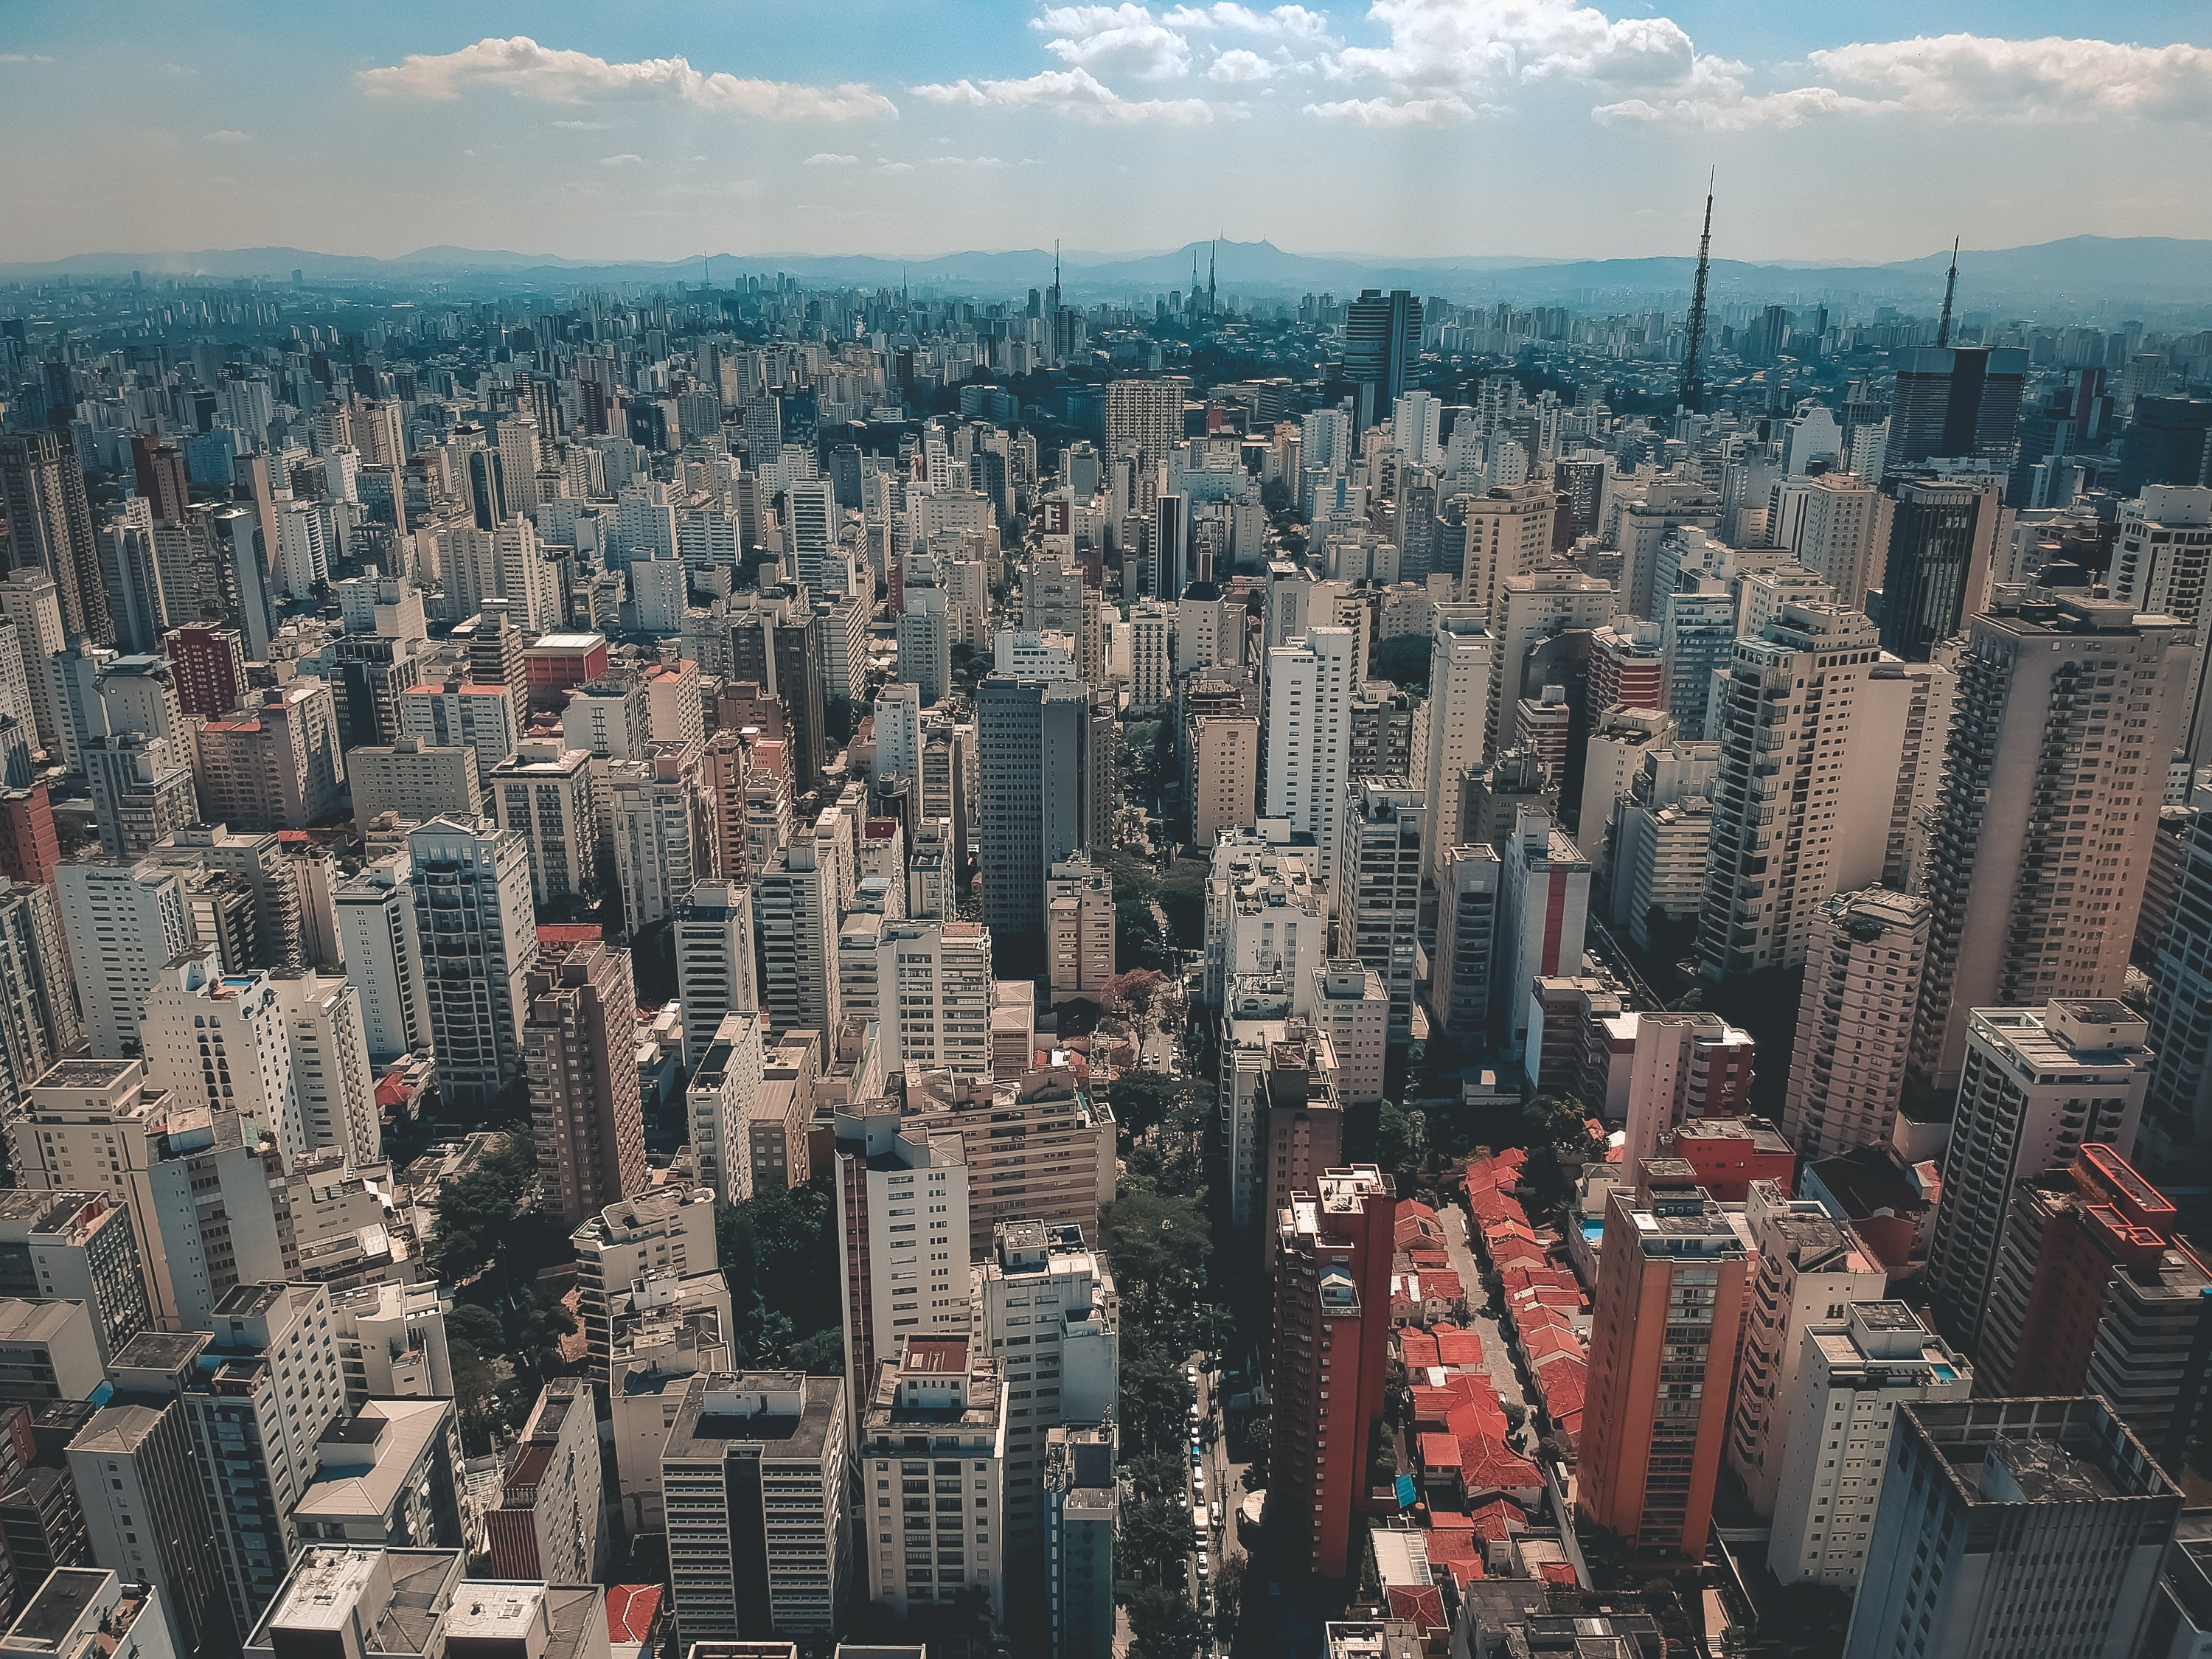 aerial photo of city buildings during daytime